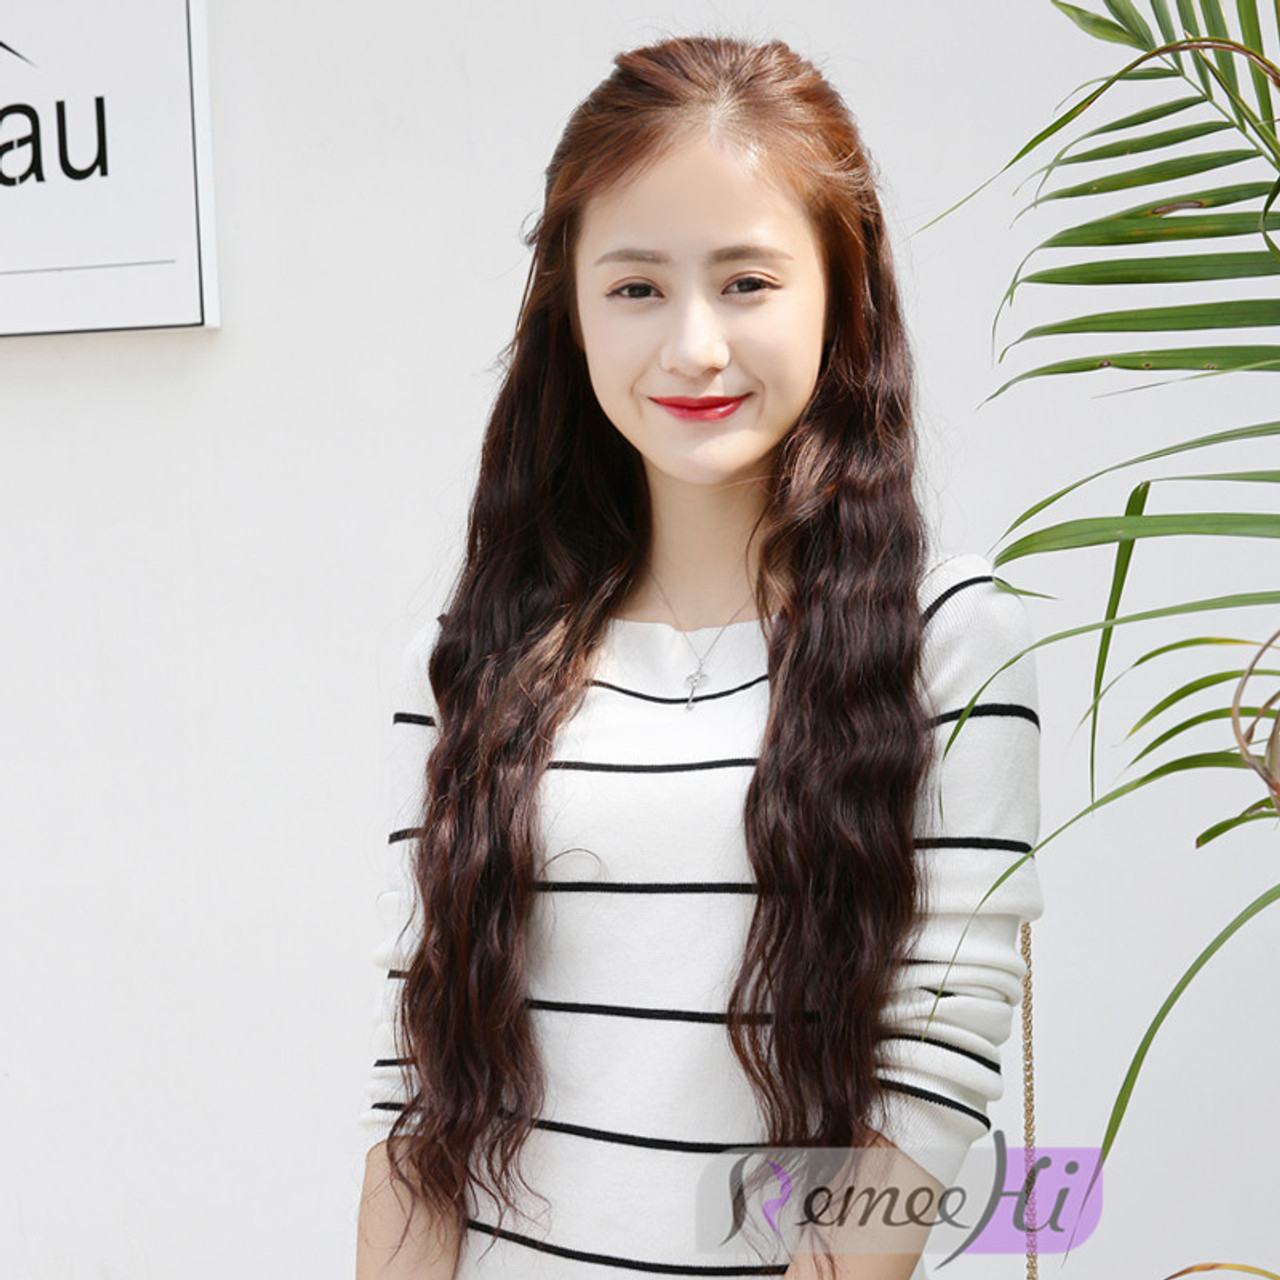 Remeehi Wave One Hairpiece Clip In Human Hair Extension 120g 45cm